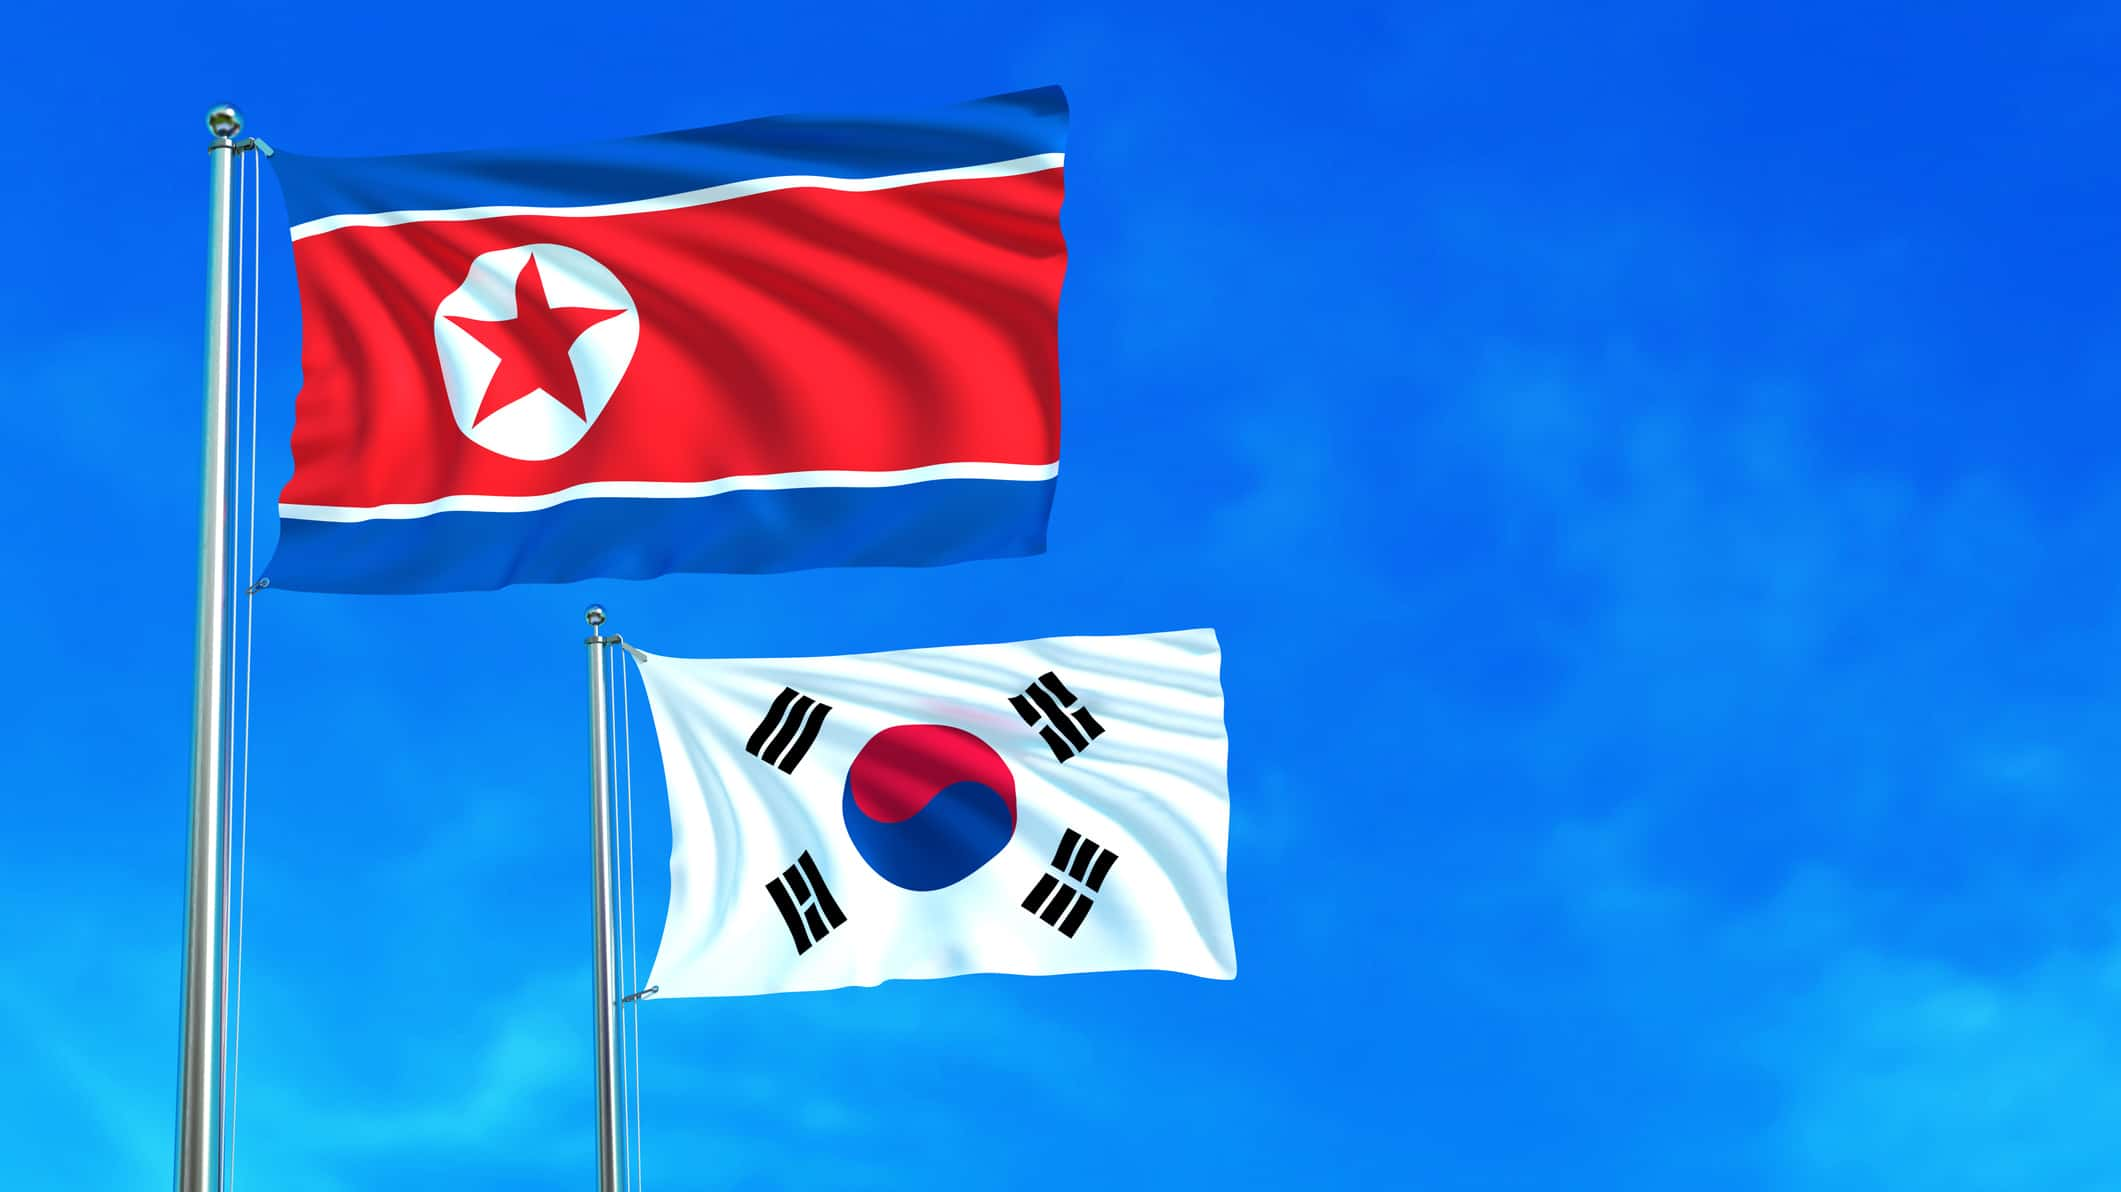 South Korea Envoys To Visit The North In Hopes Of Unlocking